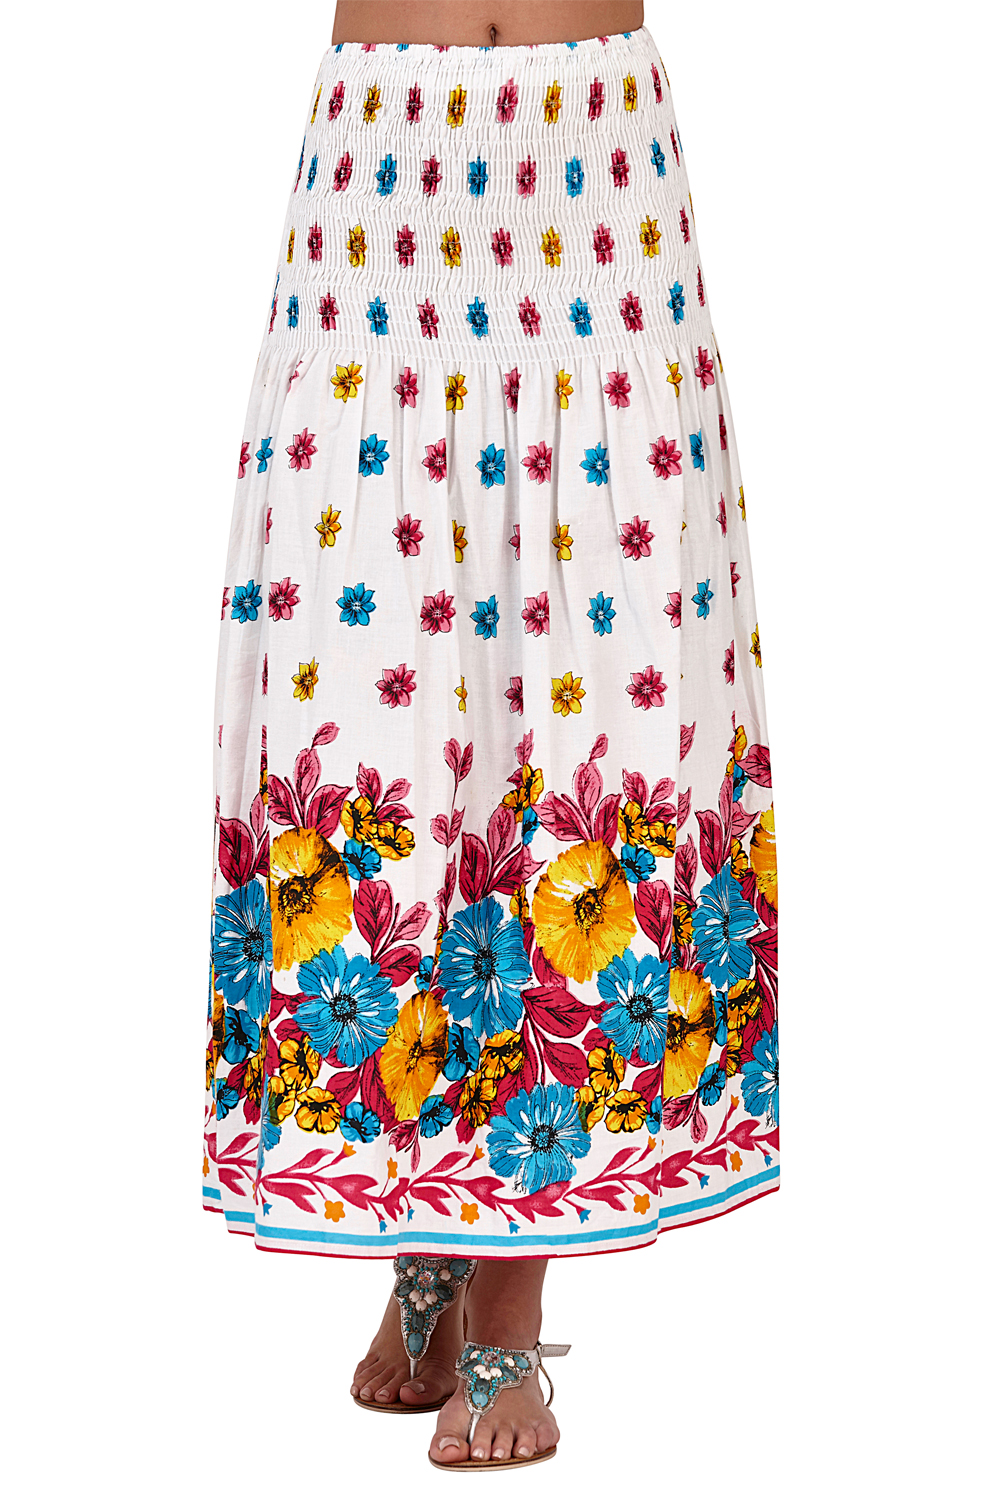 Pistachio-Womens-Patterned-3-In-1-Dresses-Ladies-New-Cotton-Summer-Beach-Skirts thumbnail 6